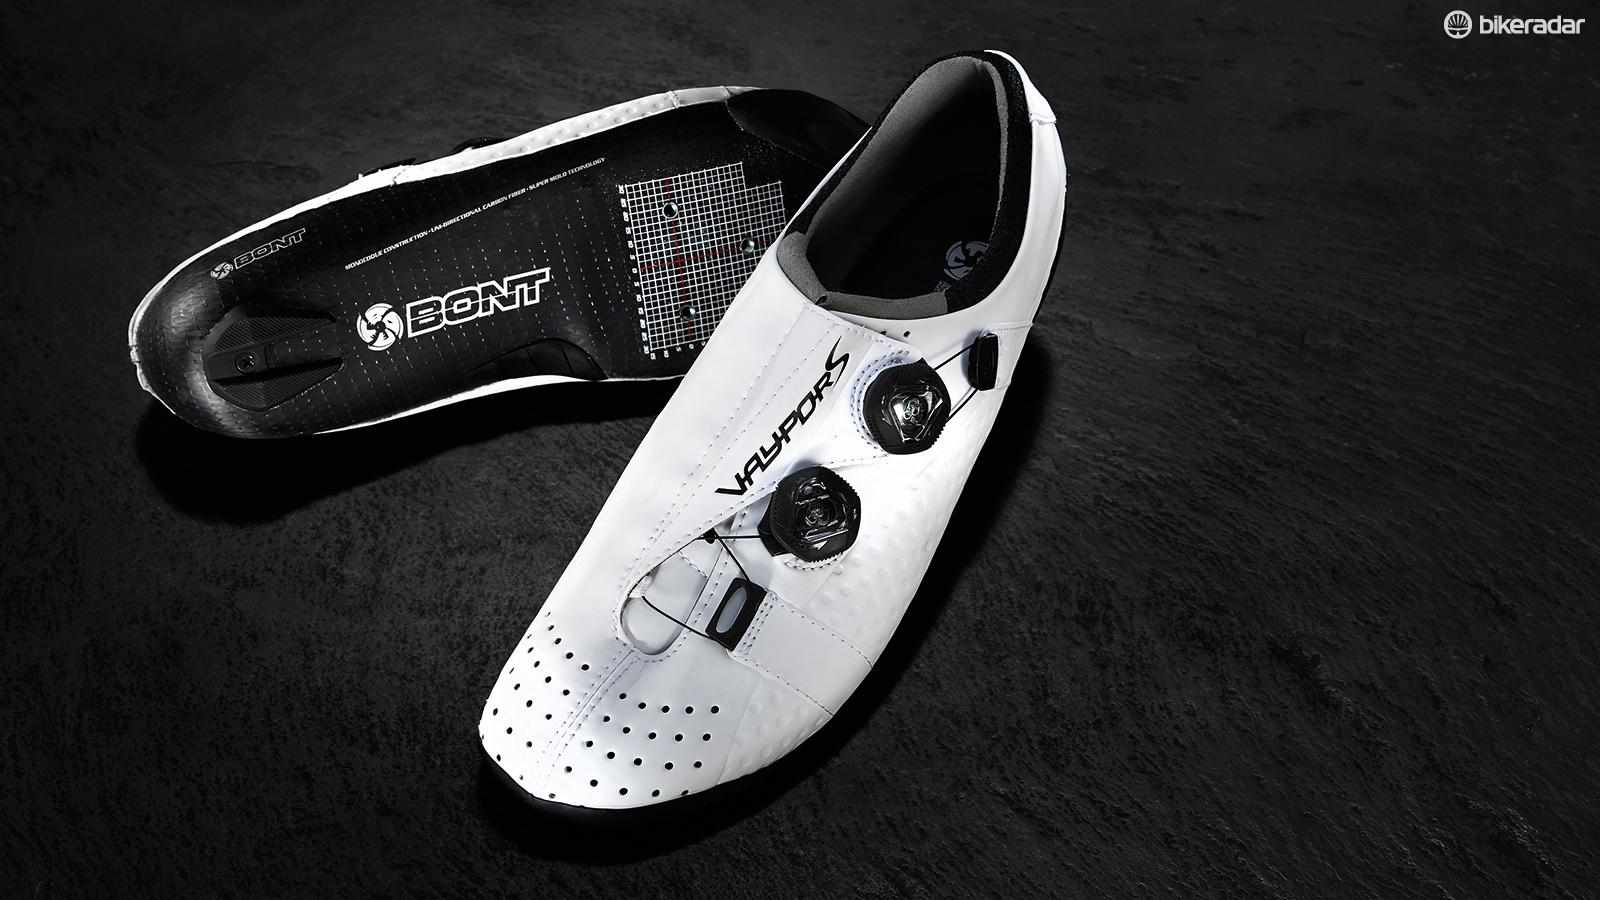 The Vaypor S is a very different construction to standard race shoes